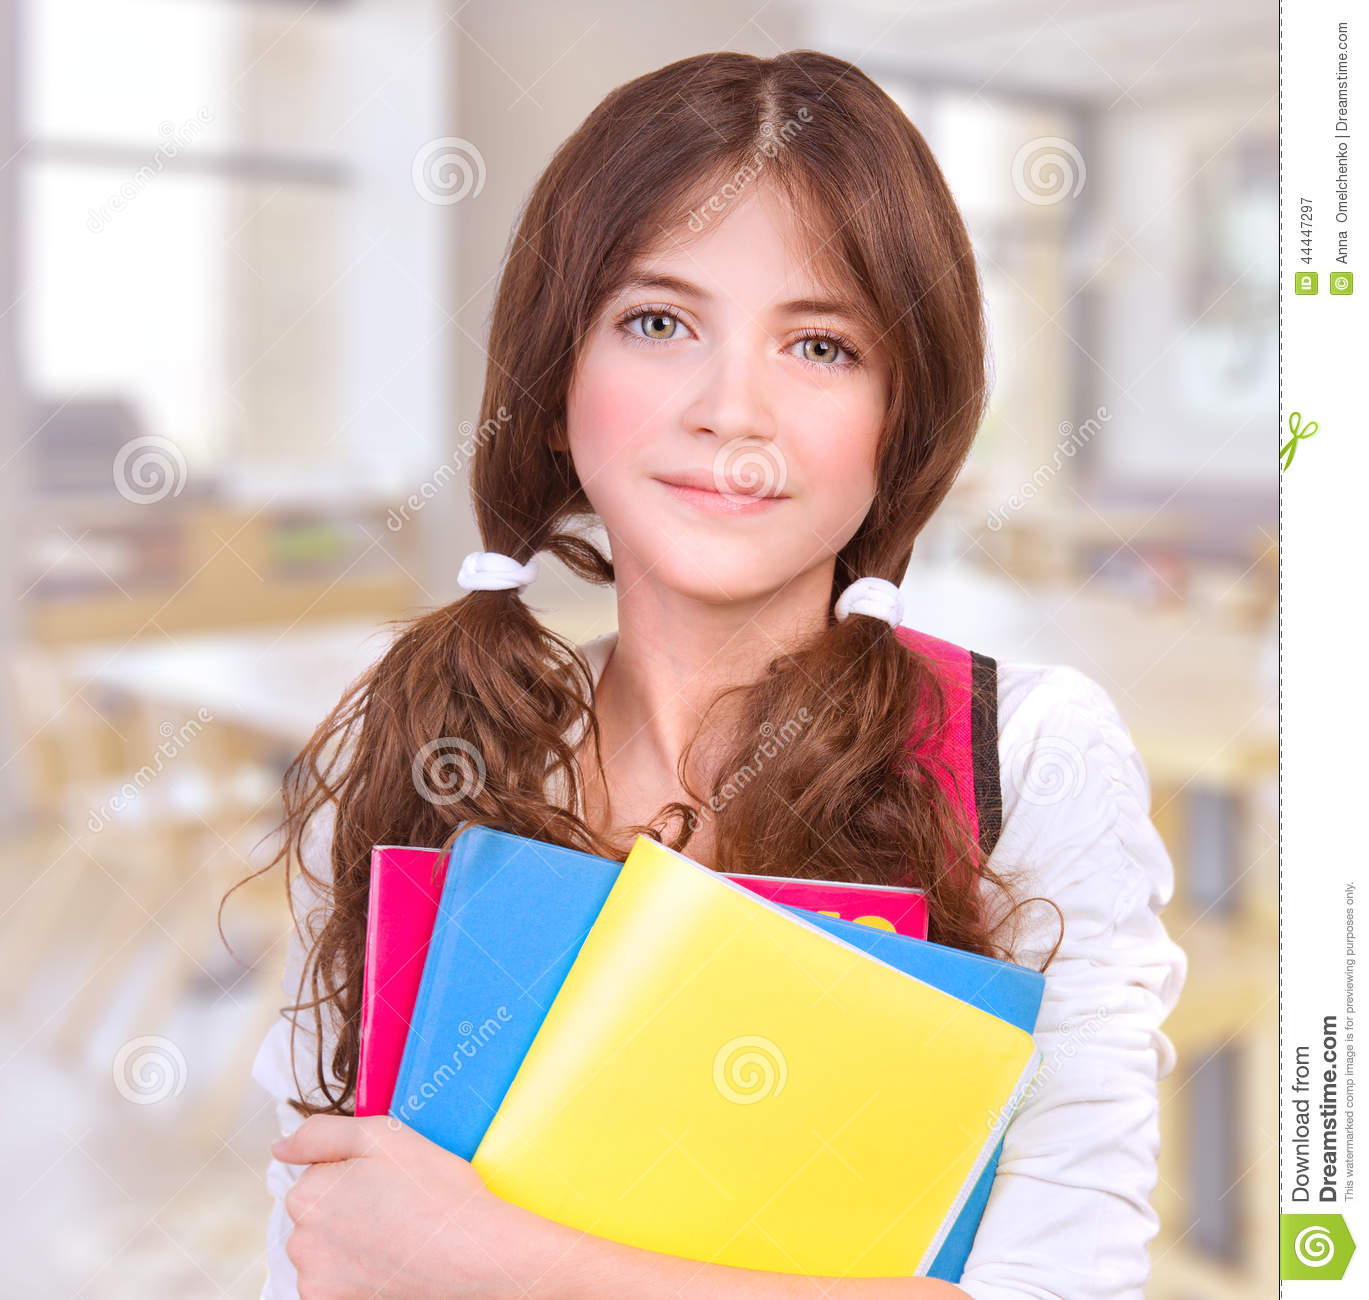 Cute girl at school stock image image of cheerful for Cute teenager girls